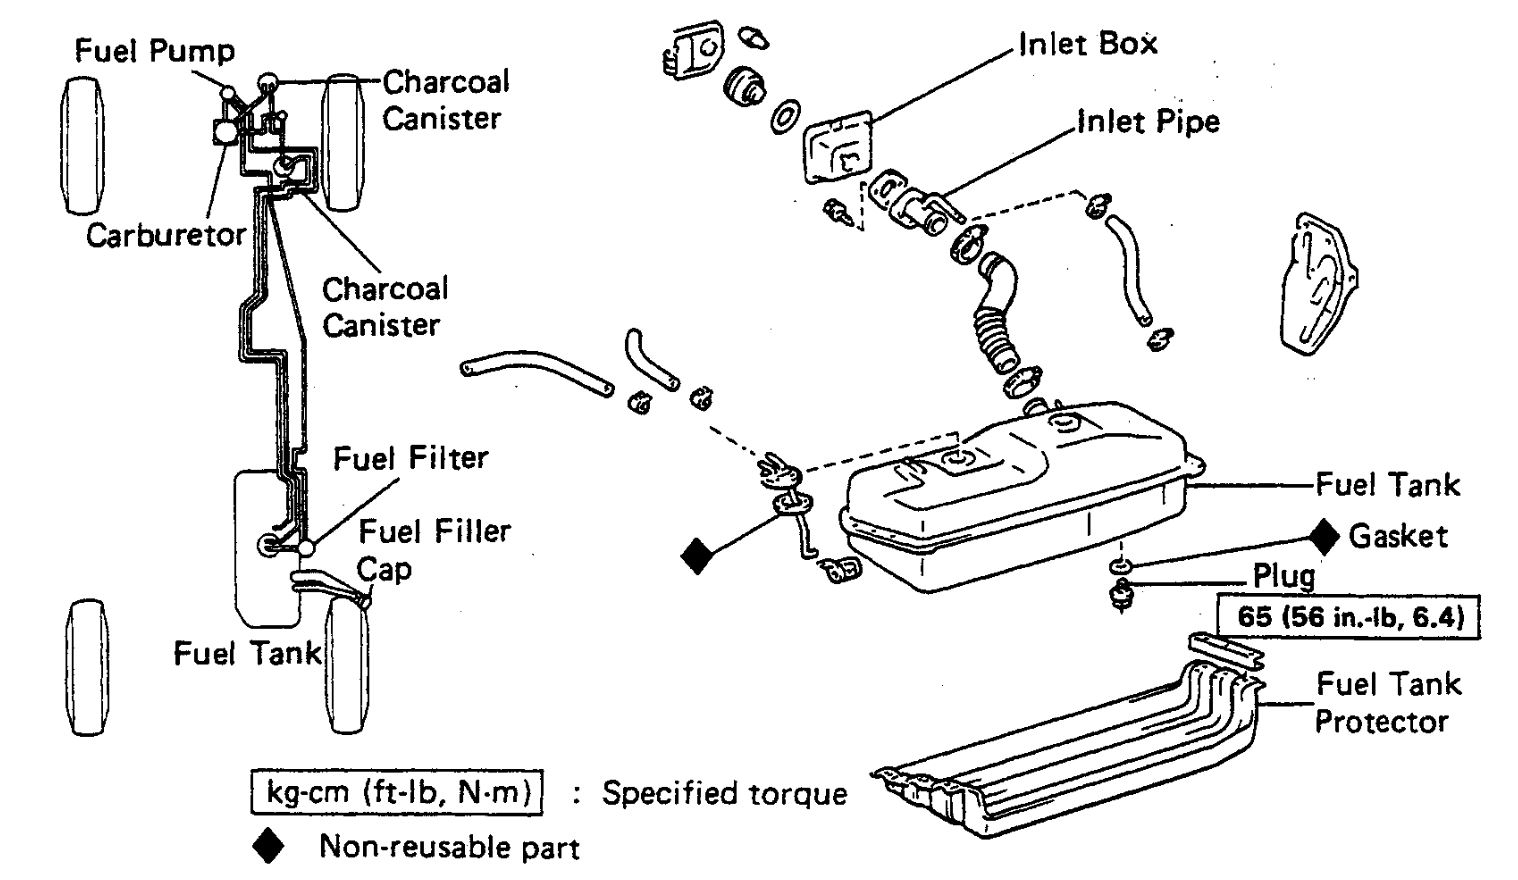 hight resolution of toyota truck 22r fuel filter wiring diagram fuel filter location my father recently purchased a toyota